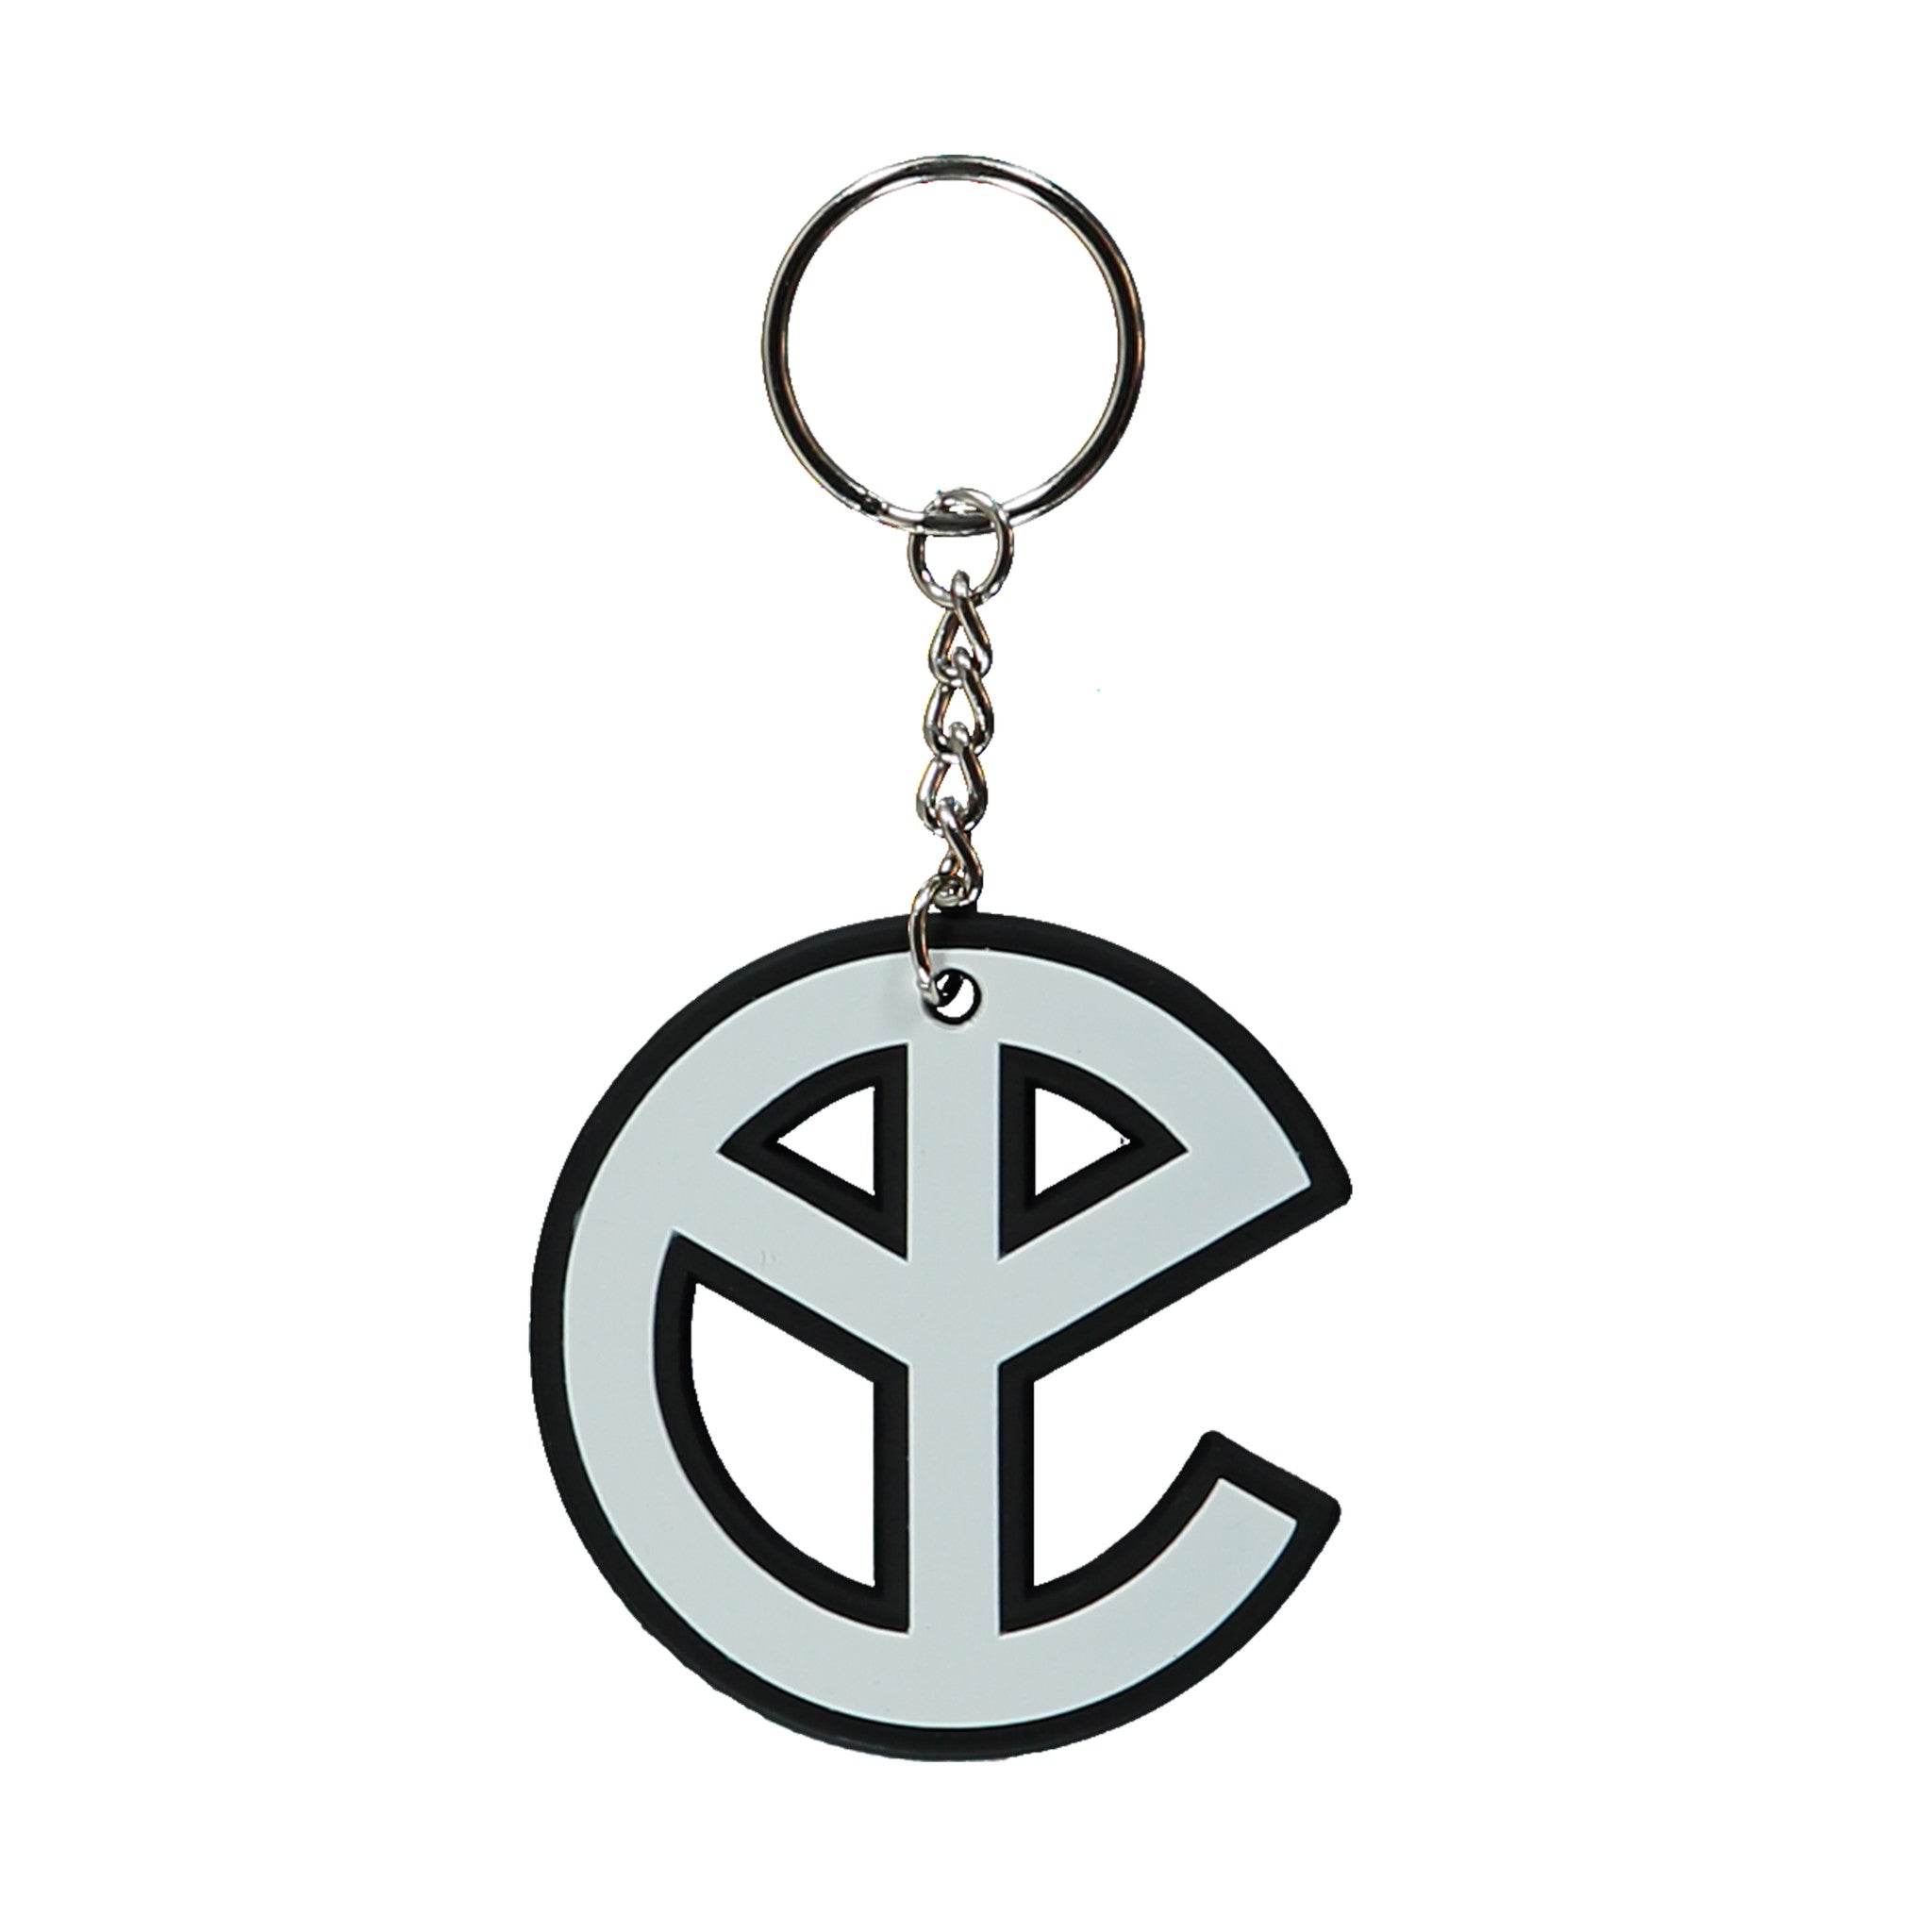 YELLOW CLAW RUBBER KEYCHAIN